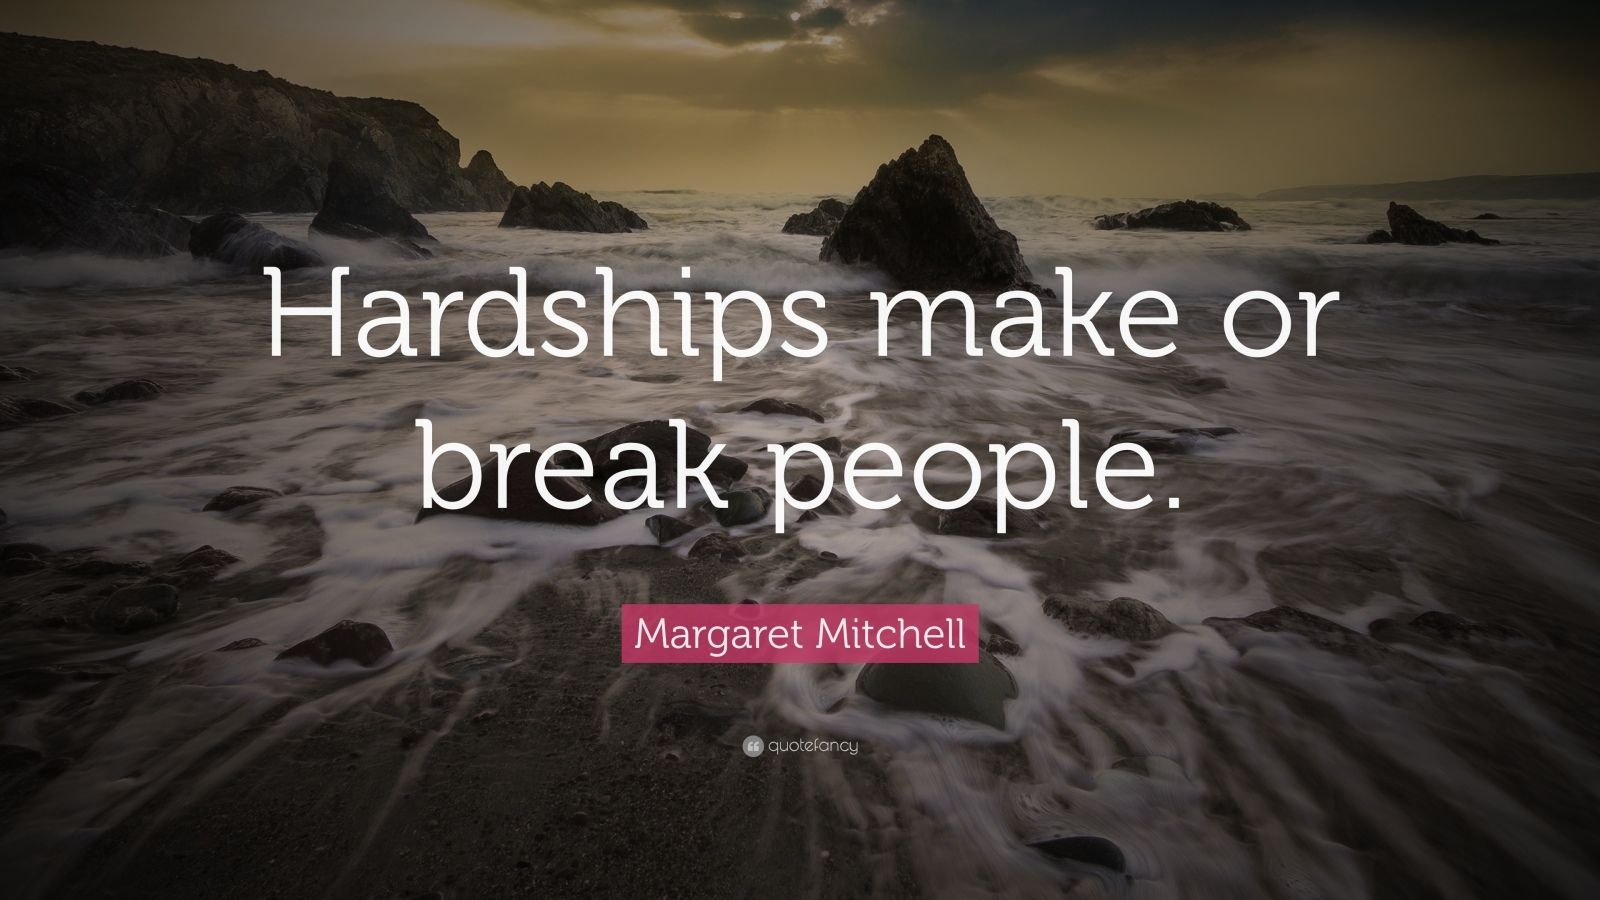 Persistence Quotes Wallpapers Margaret Mitchell Quote Hardships Make Or Break People